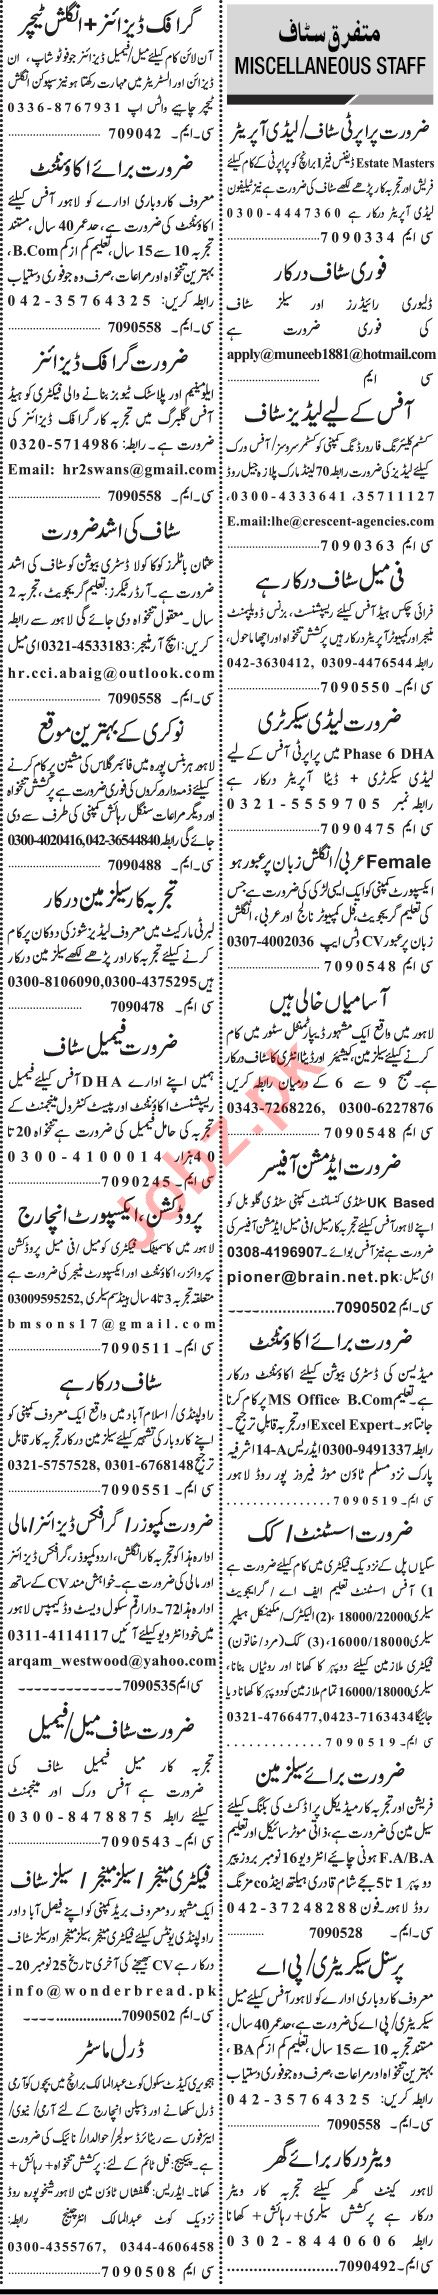 Jang Sunday Classified Ads 15 Nov 2020 for General Staff